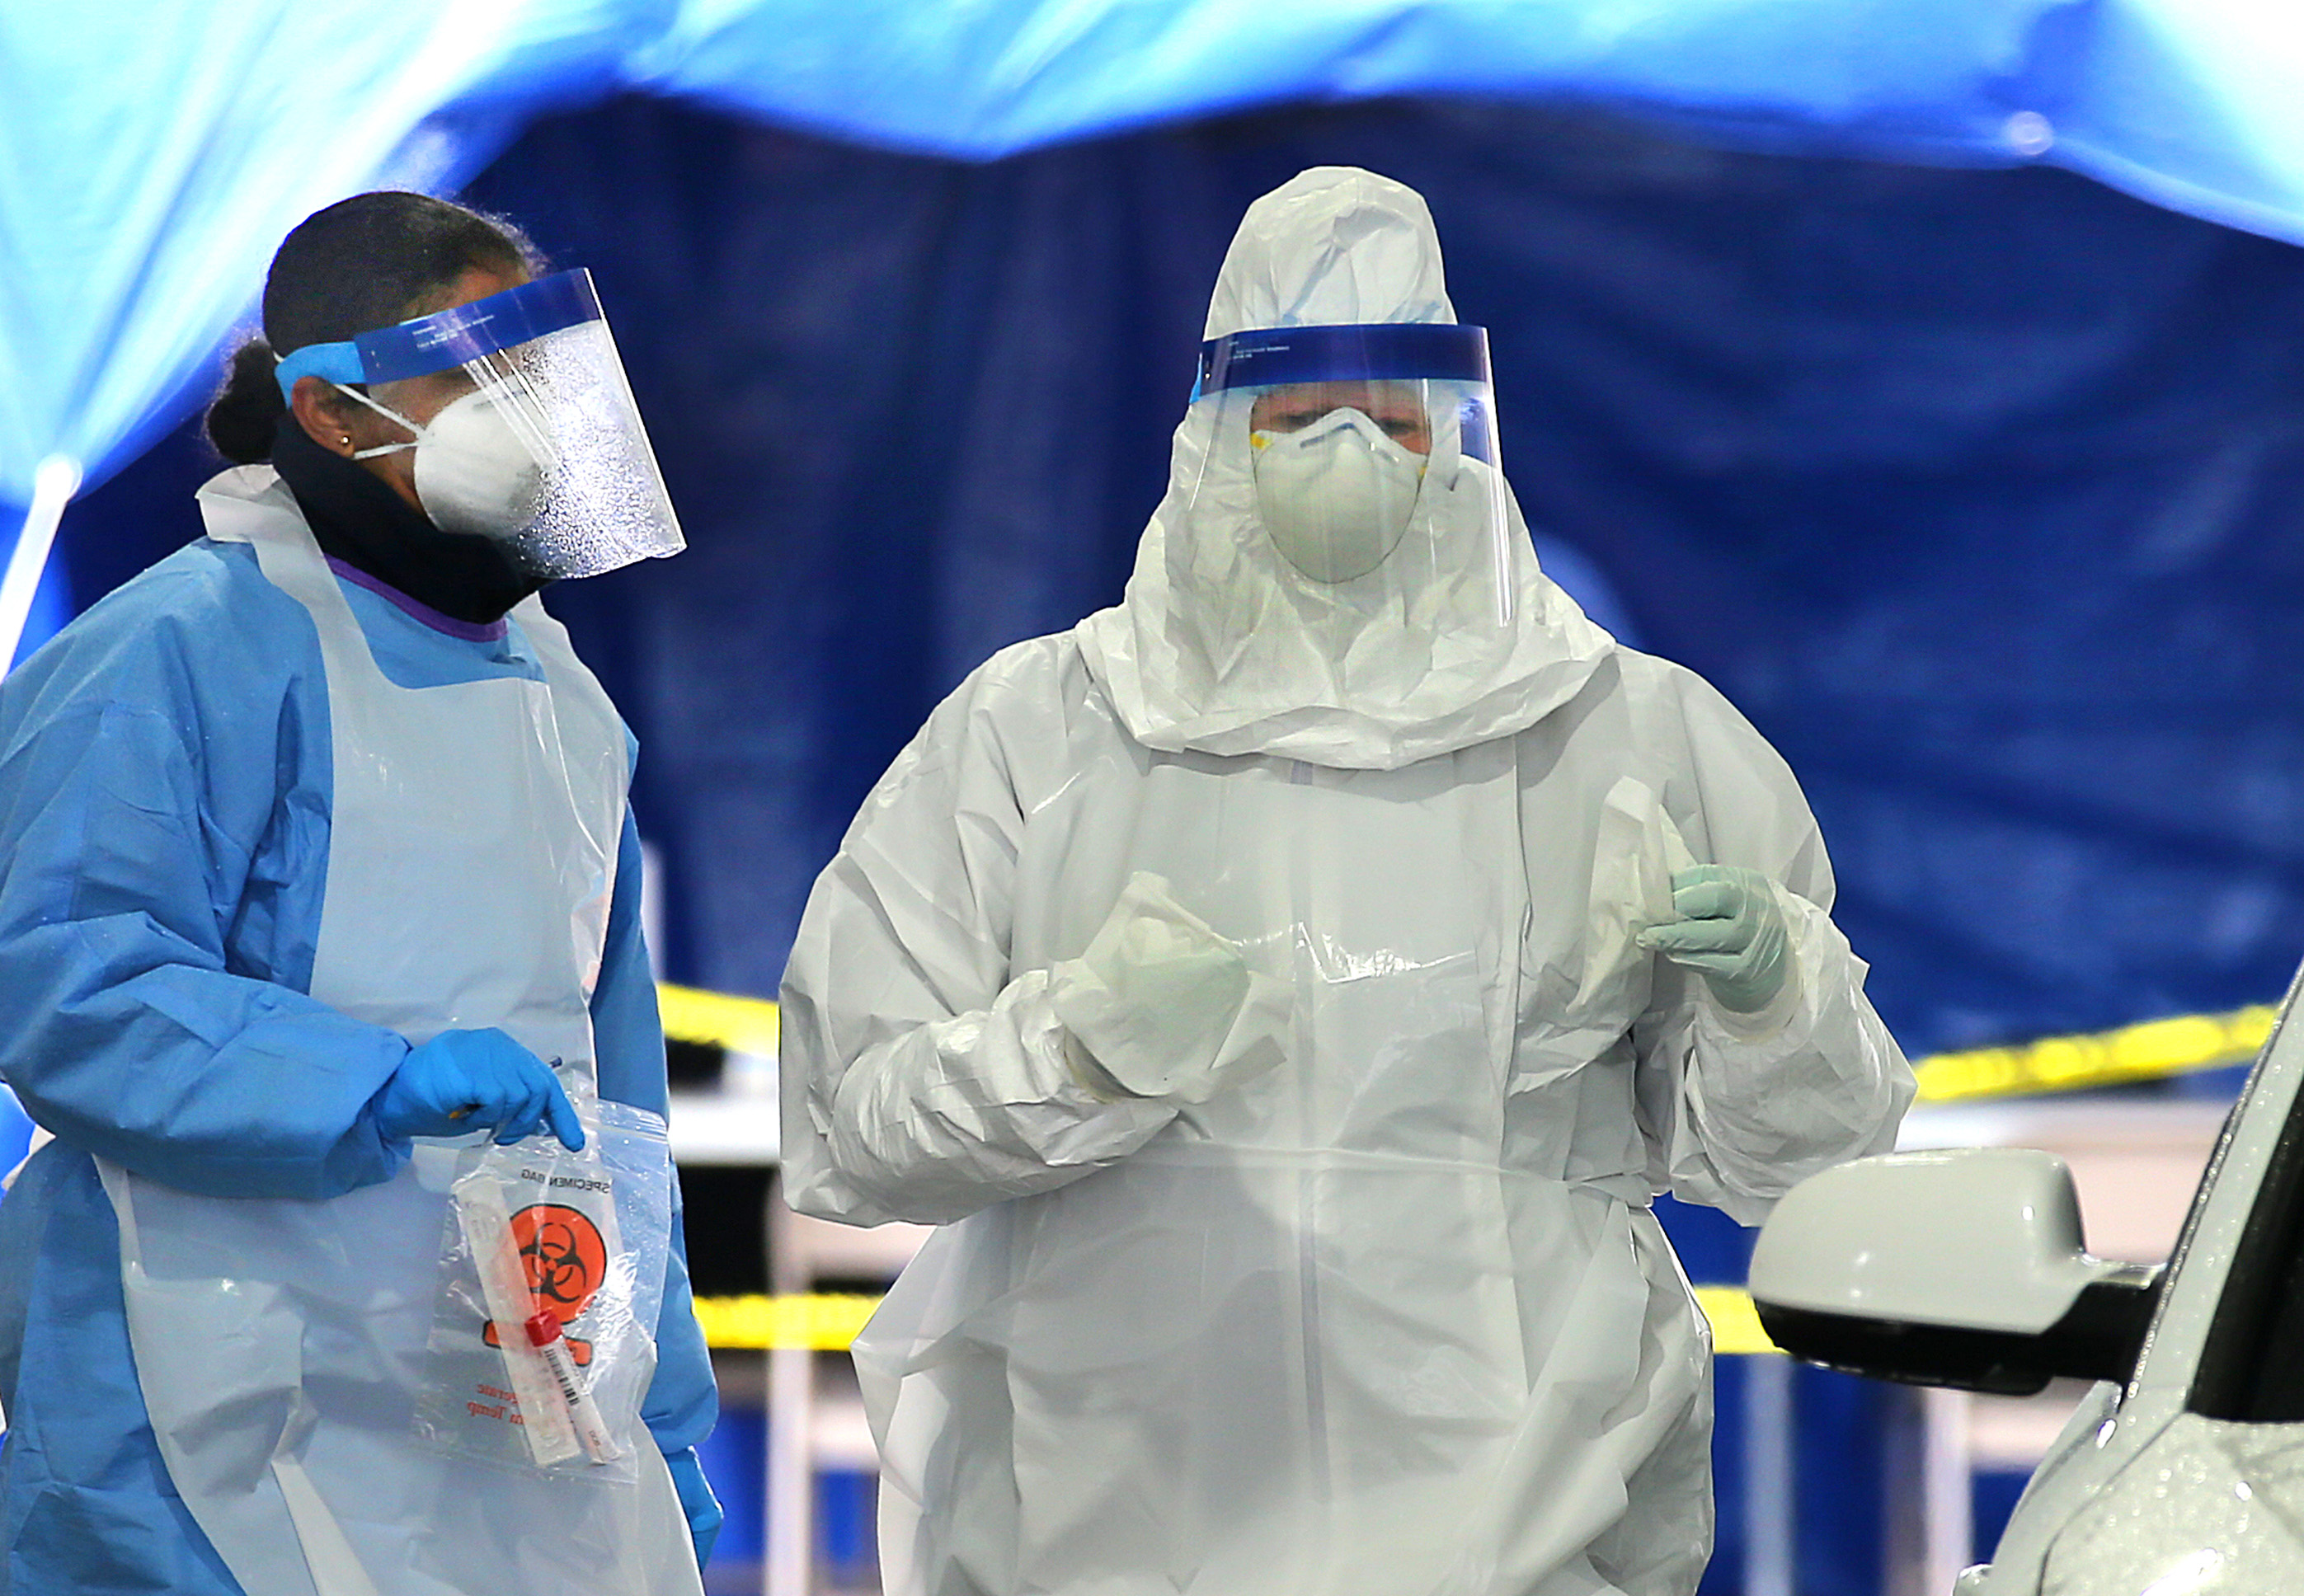 Documents show backlog of 160,000 coronavirus tests at just one lab company